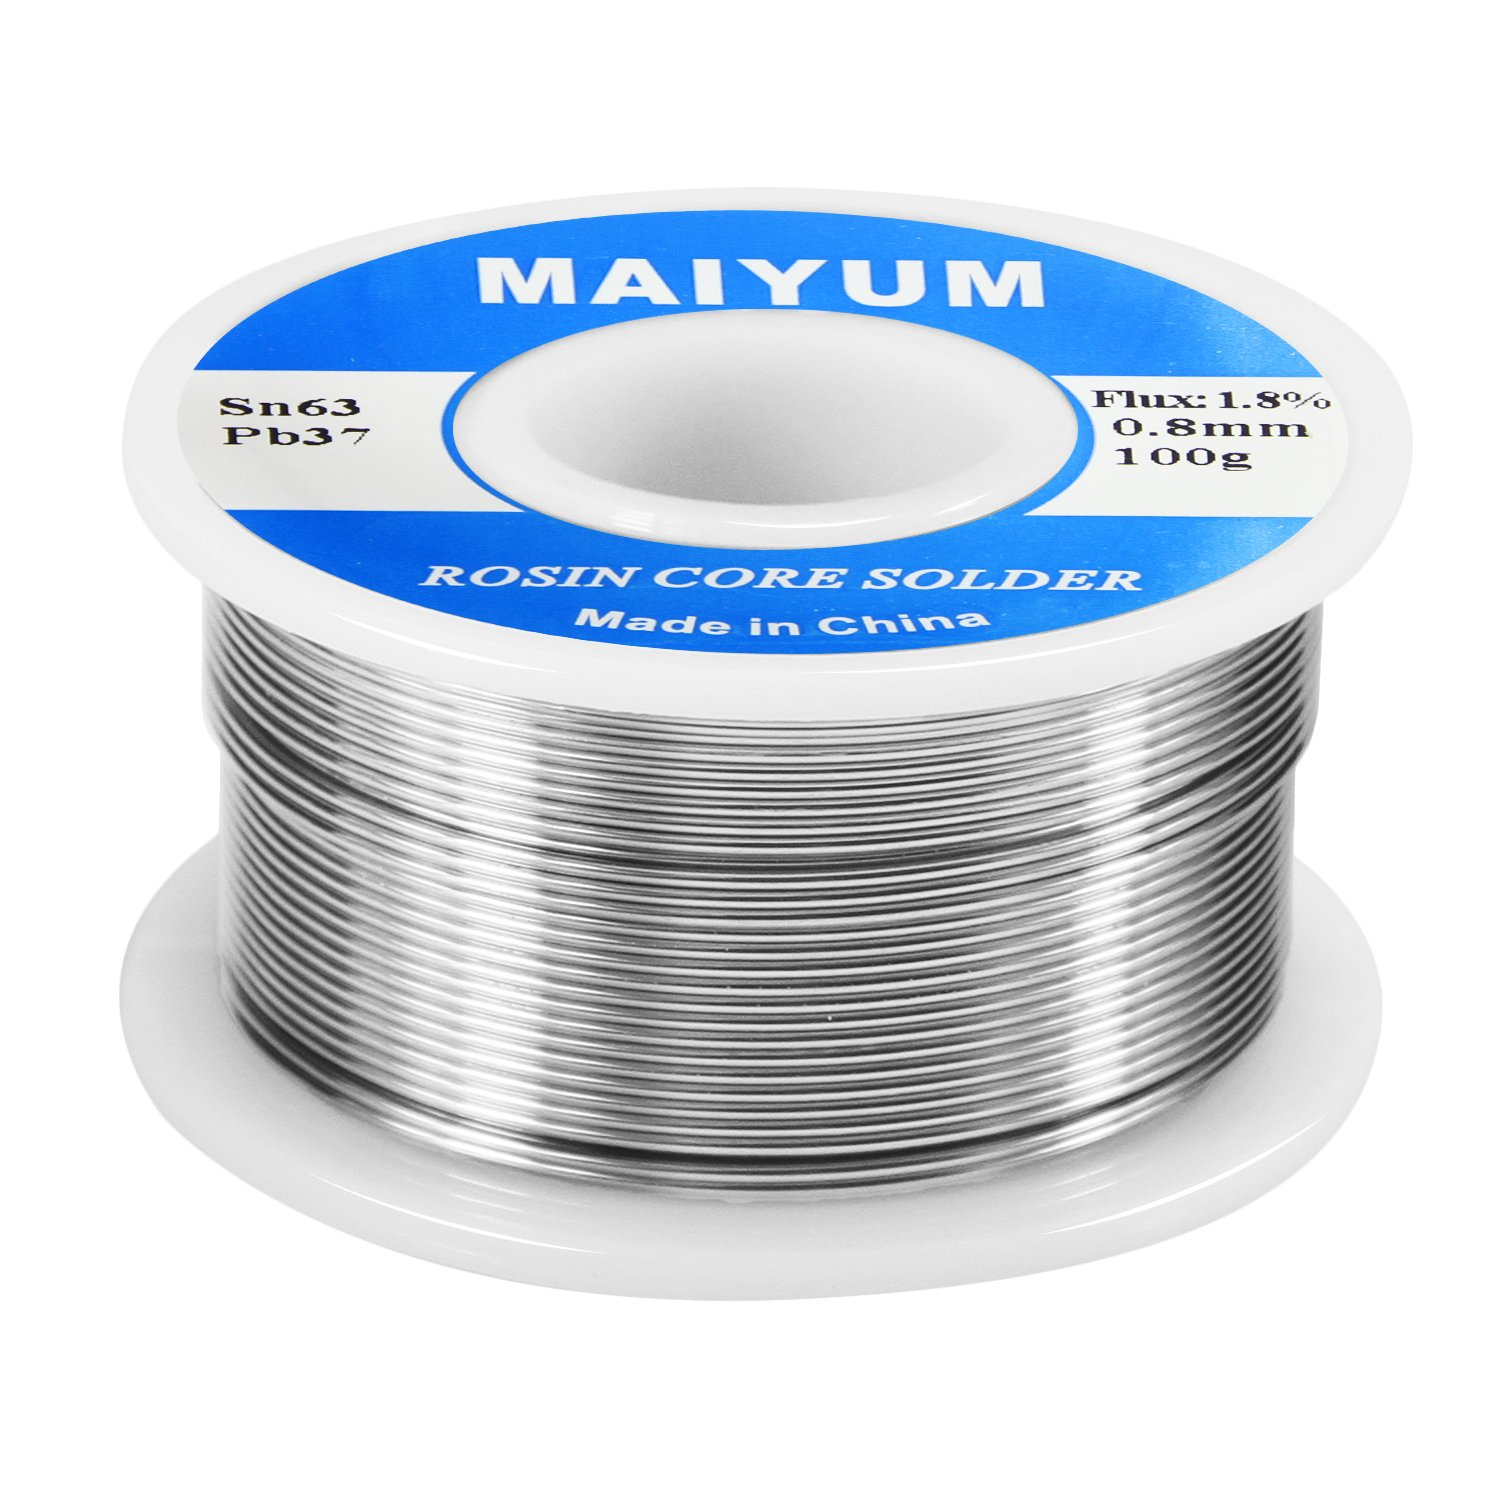 MAIYUM 63-37 Tin Lead Rosin core solder wire for electrical ...